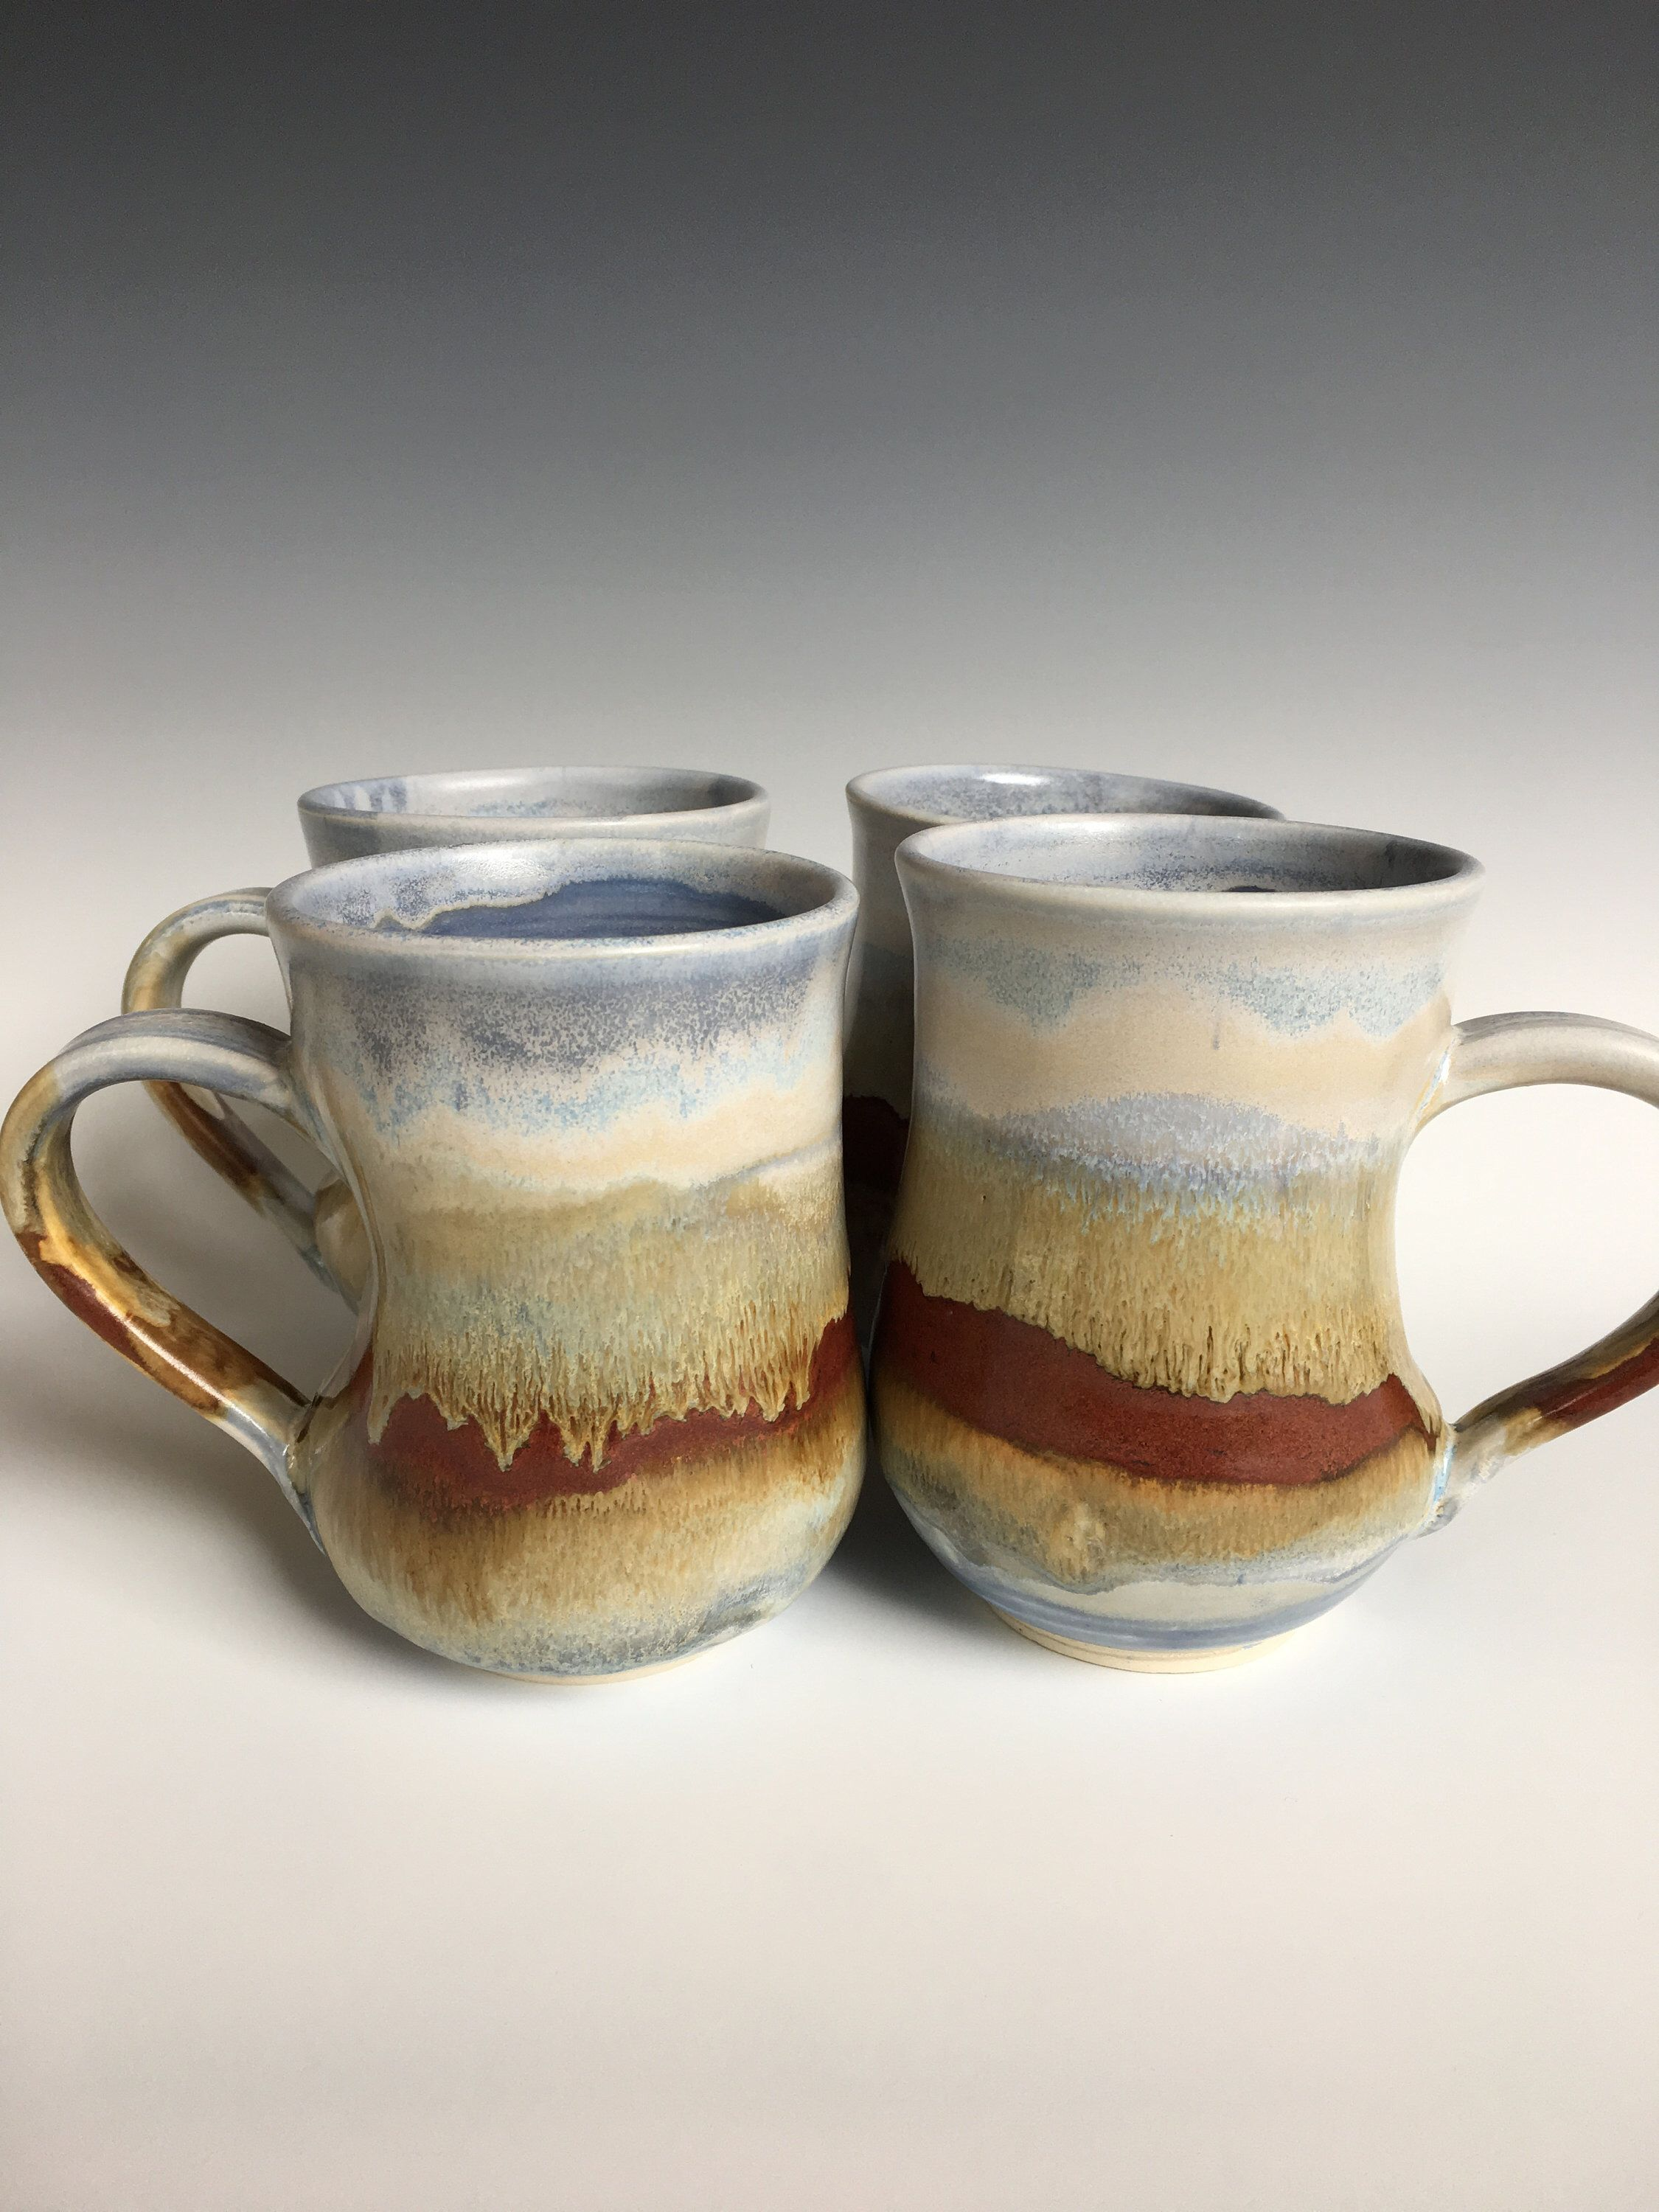 Large handcrafted porcelain mug, 14 ounce wheel thrown